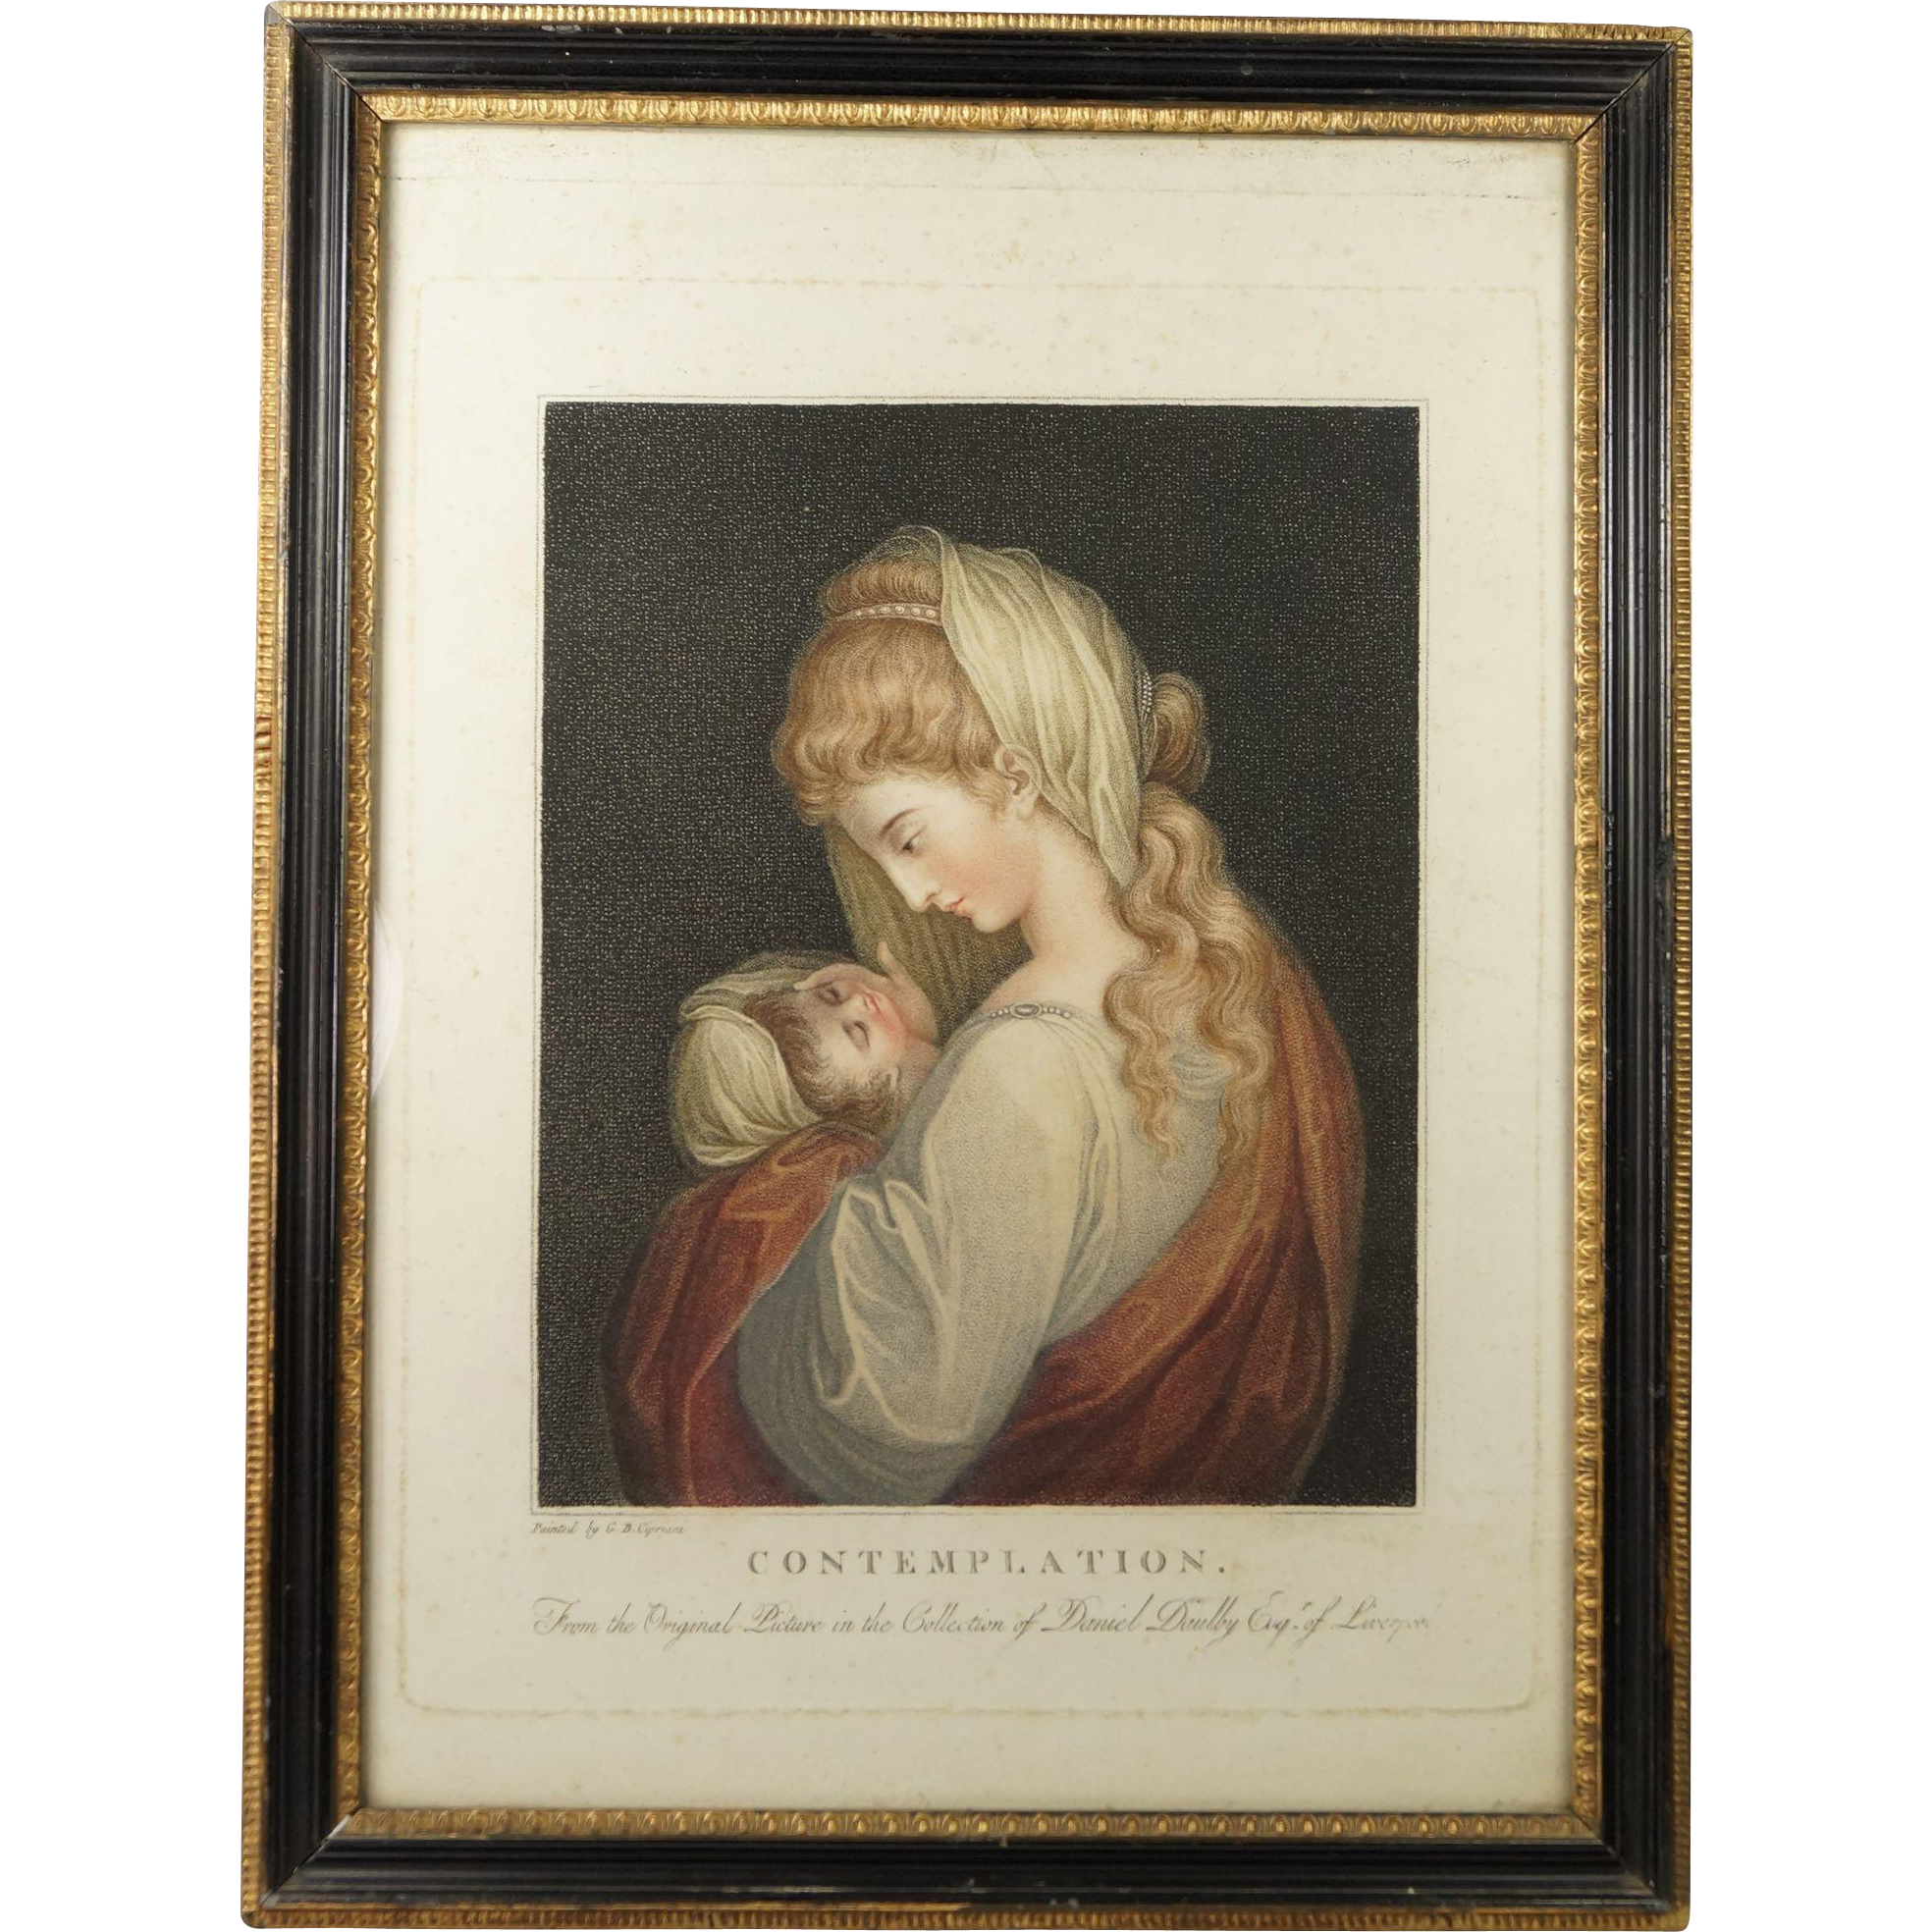 Georgian Mezzotint Engraving Contemplation after Cipriani English Circa 1791